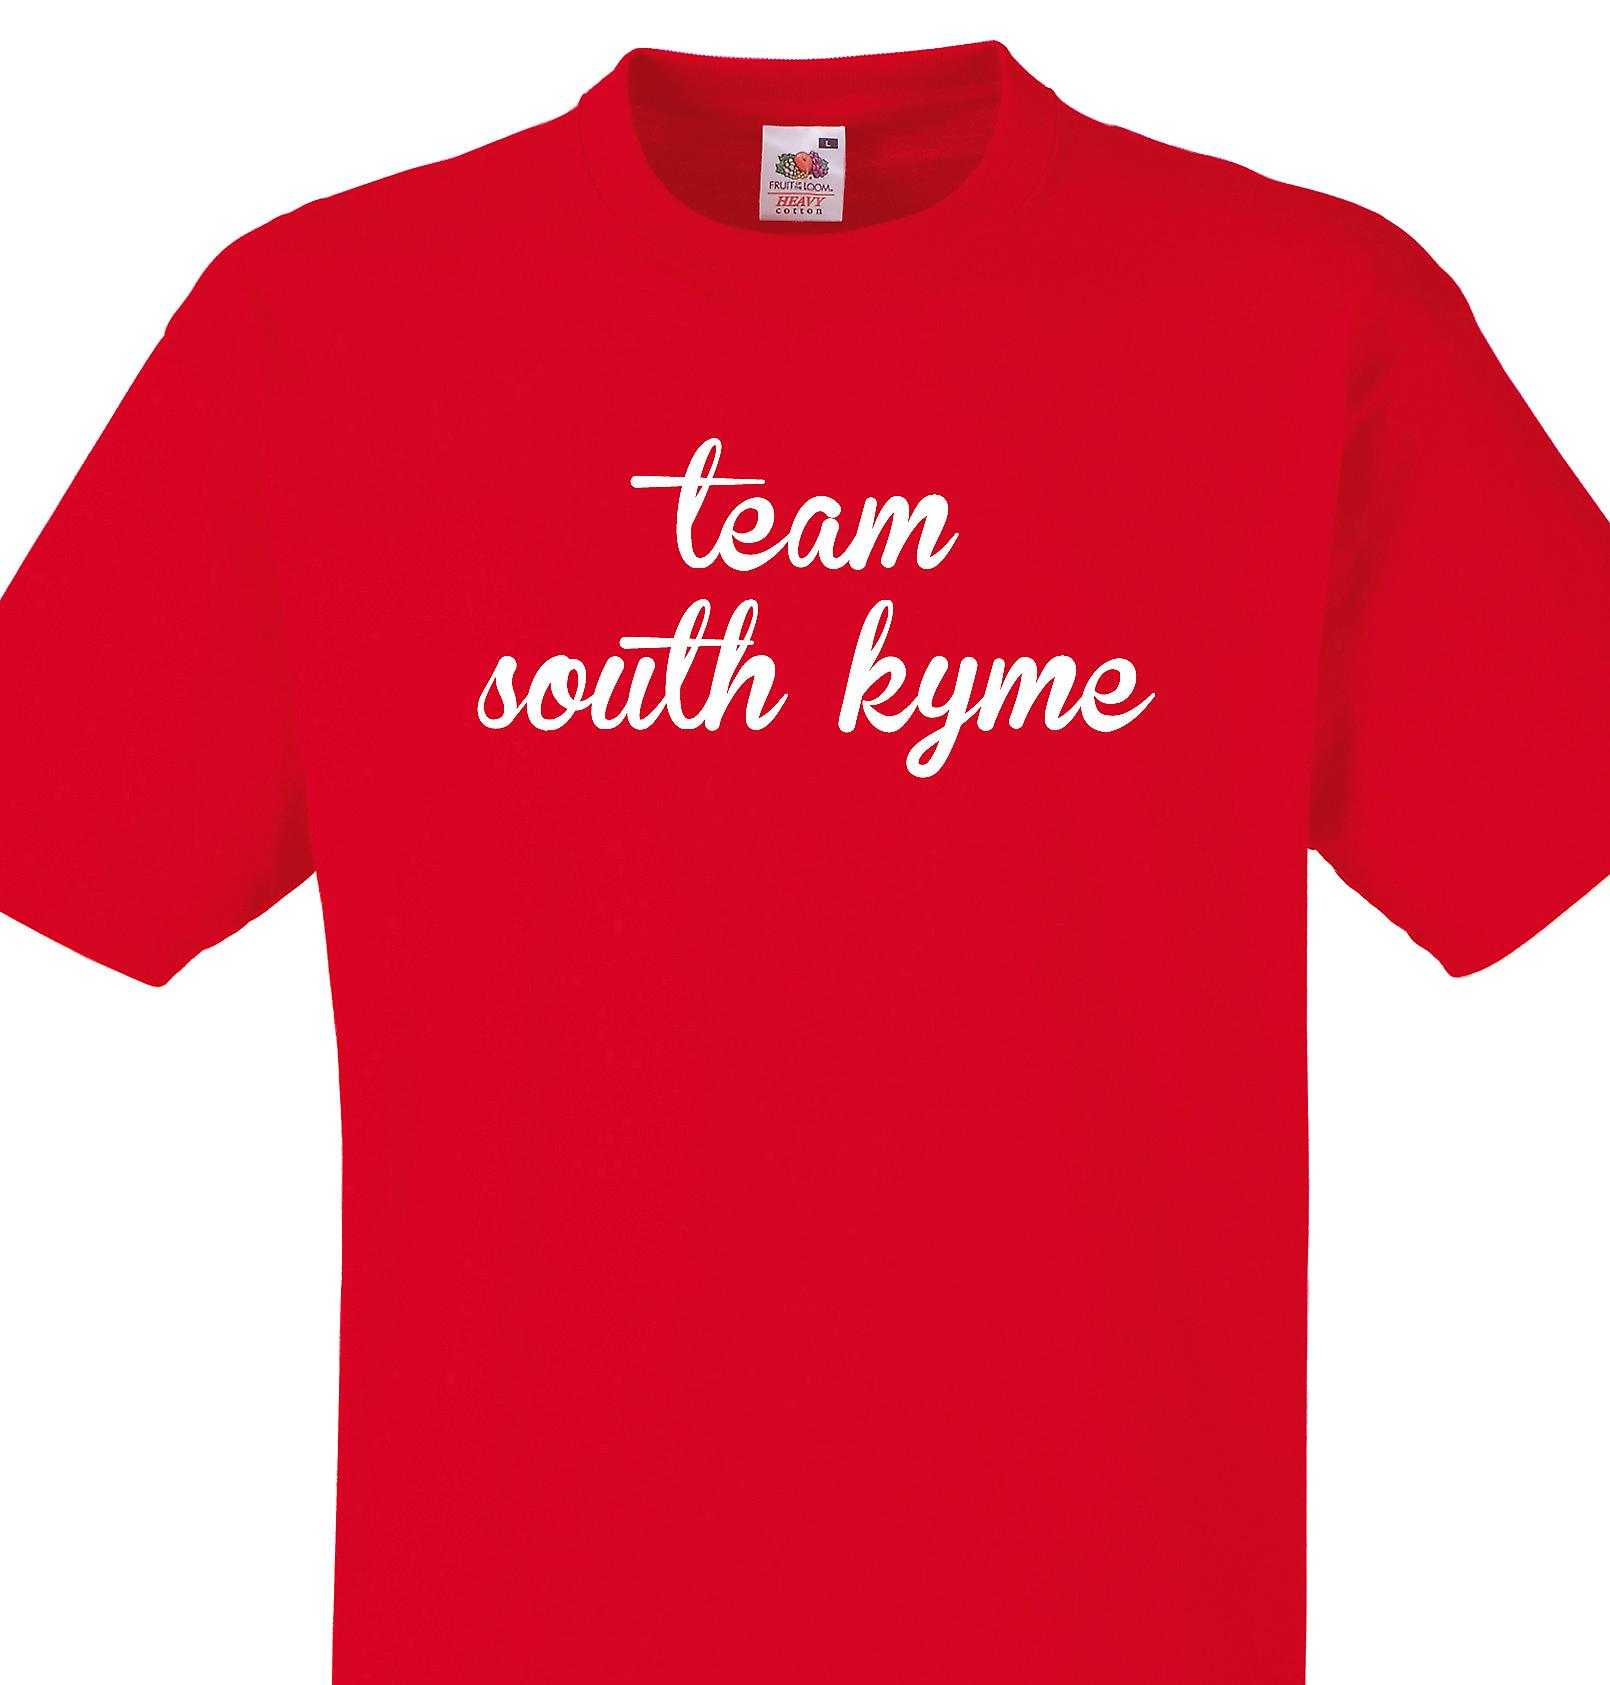 Team South kyme Red T shirt